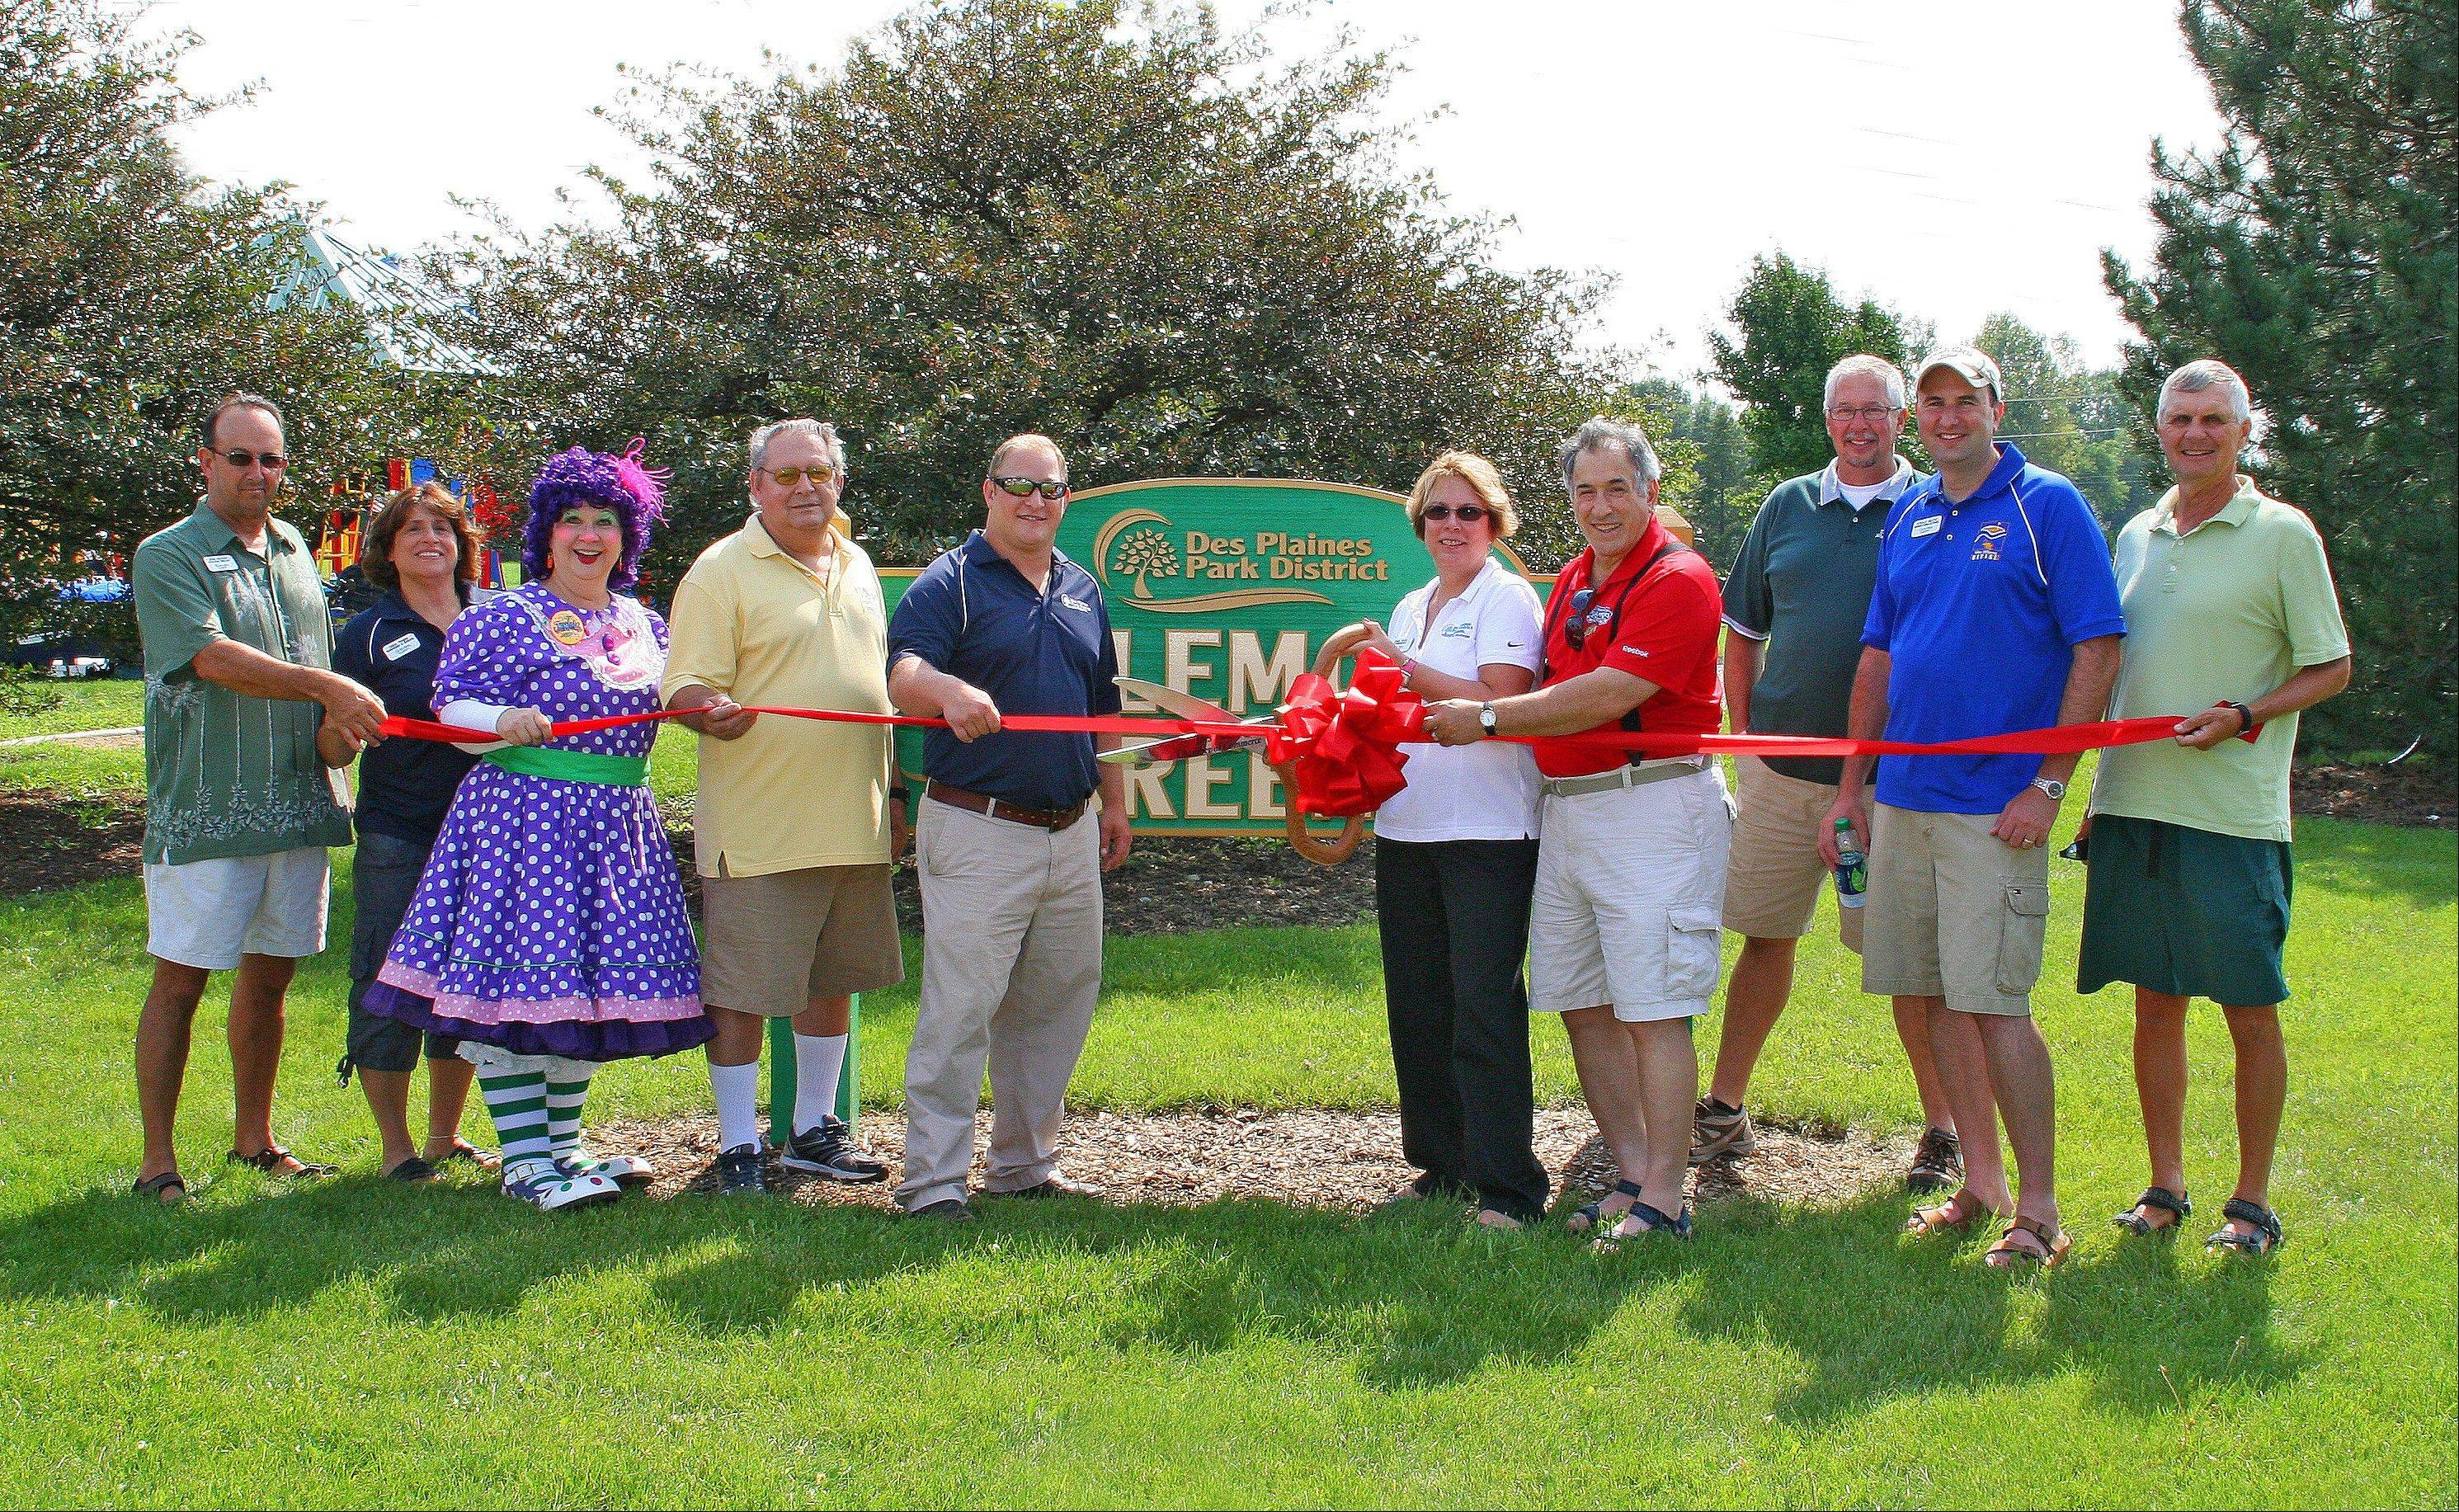 Des Plaines Park District Executive Director John Hecker, left, Superintendent Linda Traina, Jewels the Clown, Mike Lake, Board Commissioner Joe Weber, Board President Jana Bishop Haas, Des Plaines Mayor Martin Moylan, Superintendent Paul Cathey, Superintendent Don Miletic, and 7th Ward Alderman Dan W. Wilson took part in the ribbon-cutting ceremony for Kylemore Greens Park in Des Plaines on Saturday, Aug. 27.